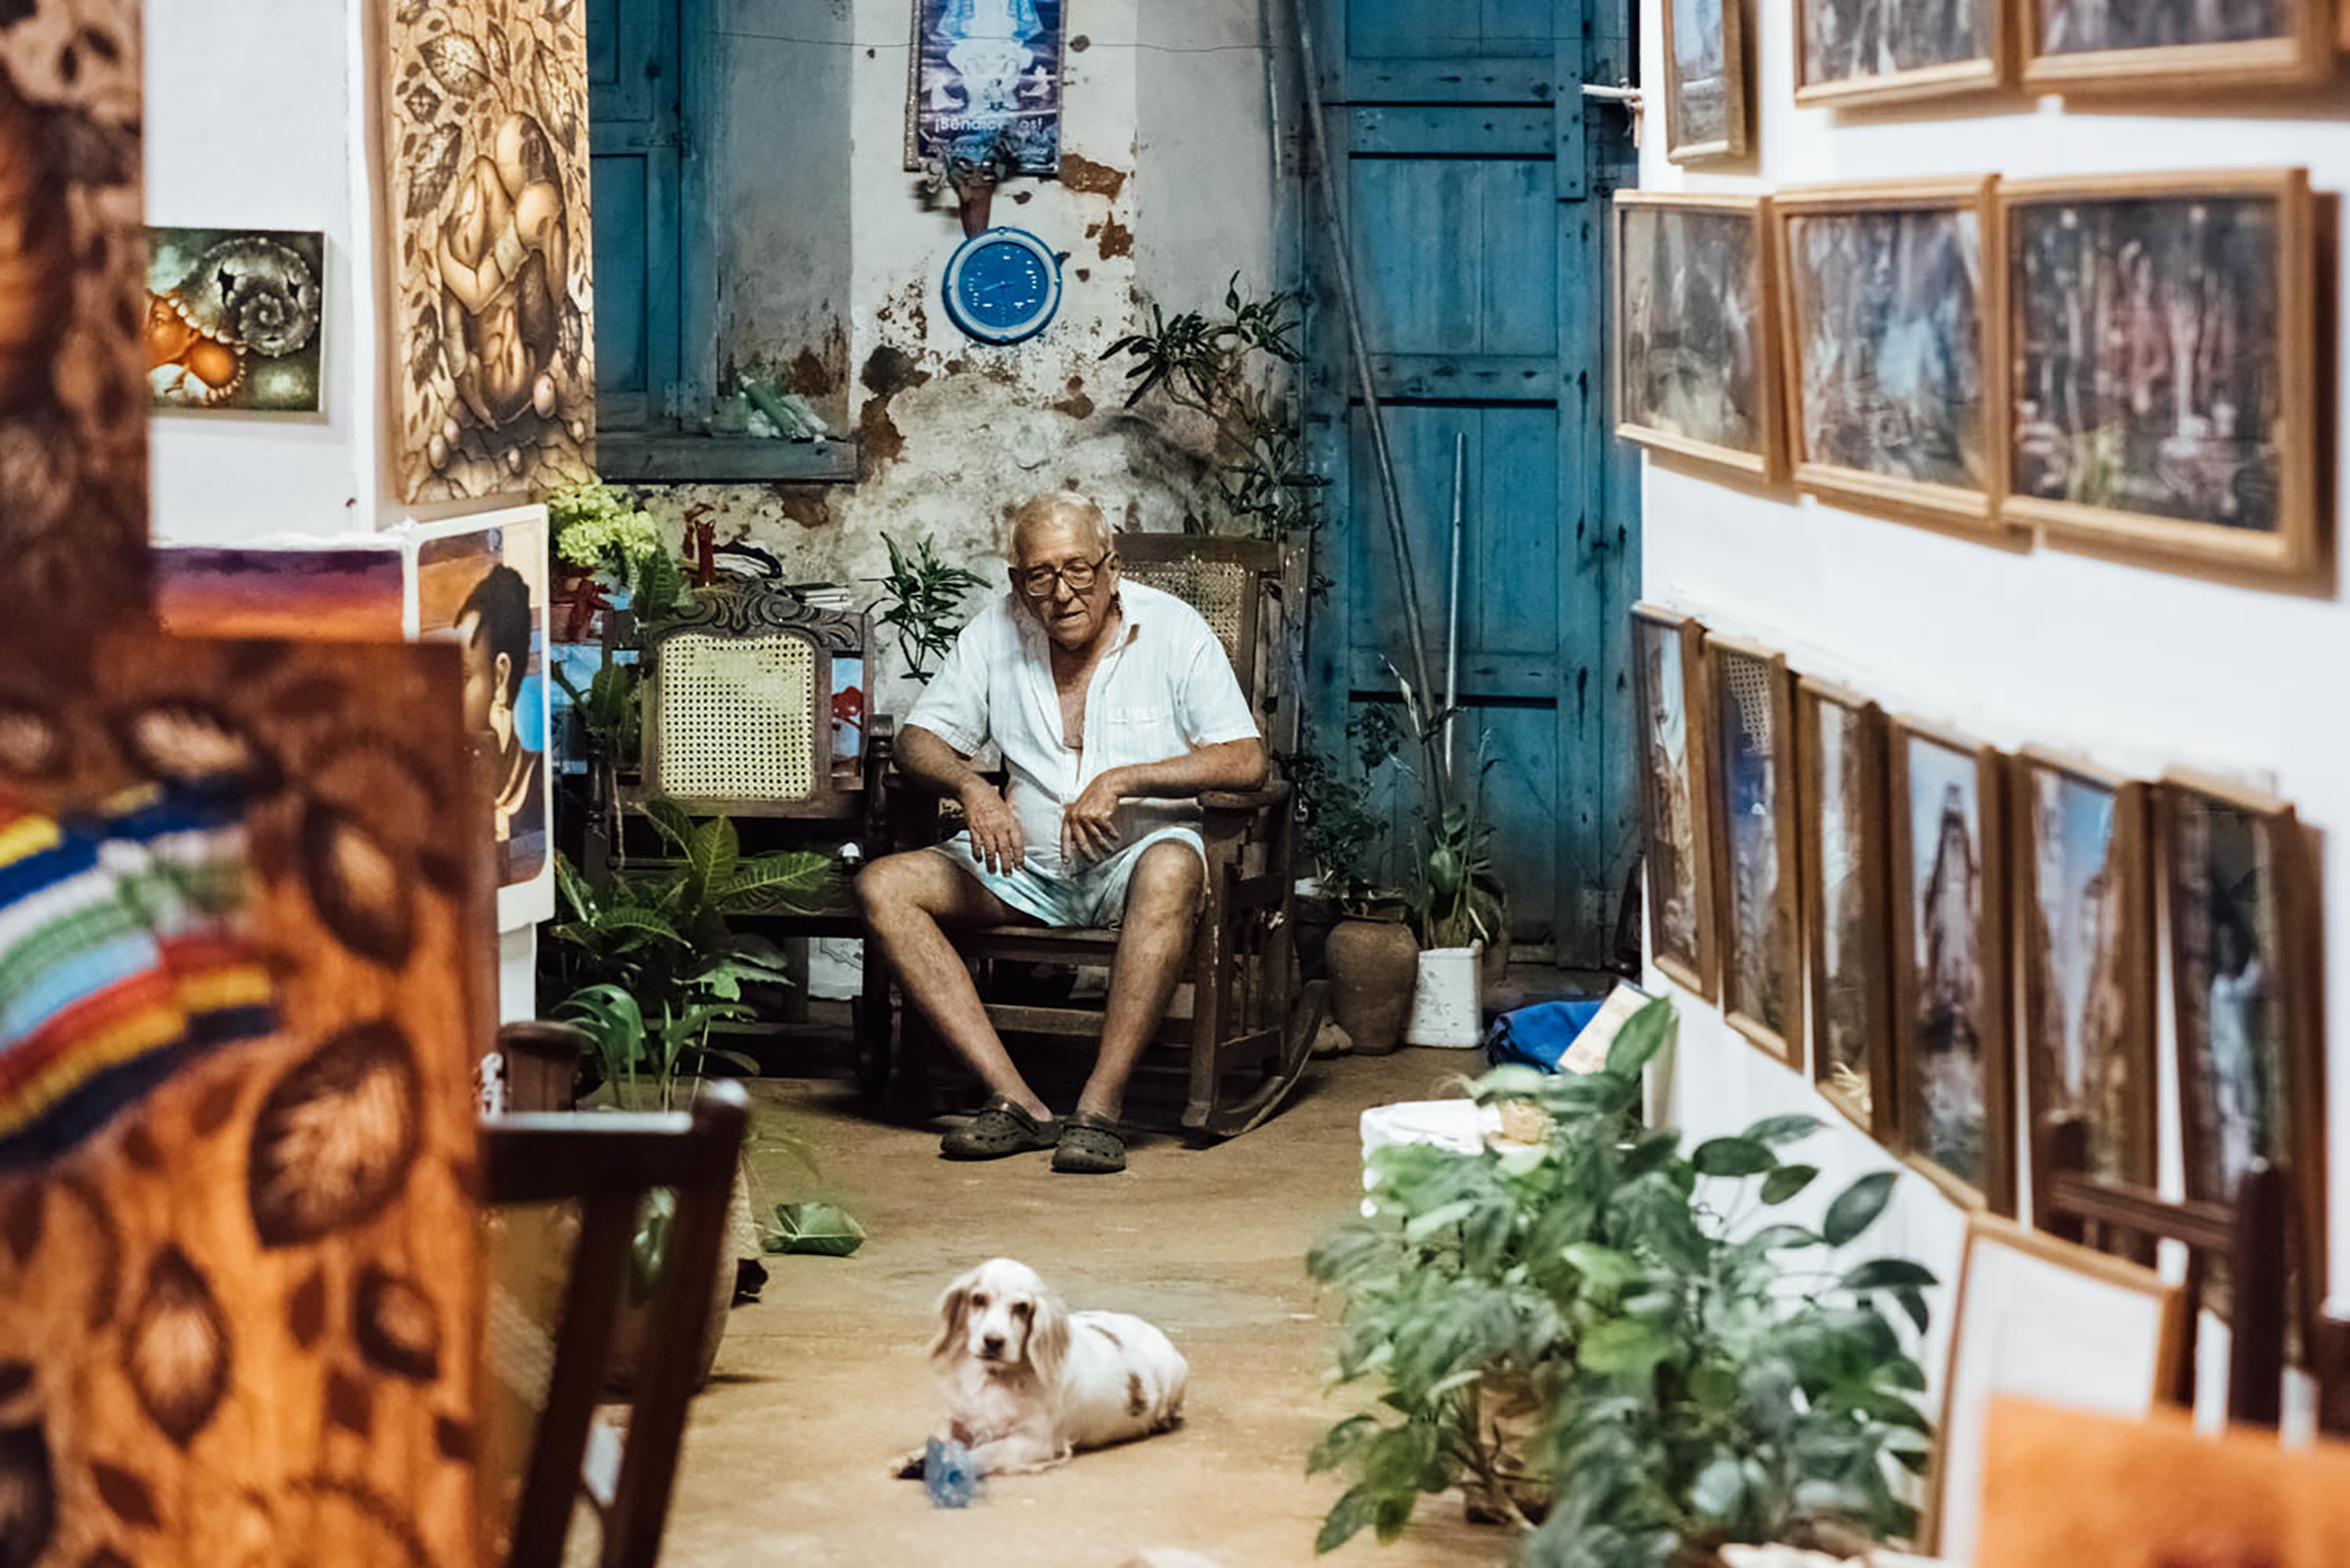 A beautiful story of an artist and his dog companion, photographed in his living space during a late night walk.